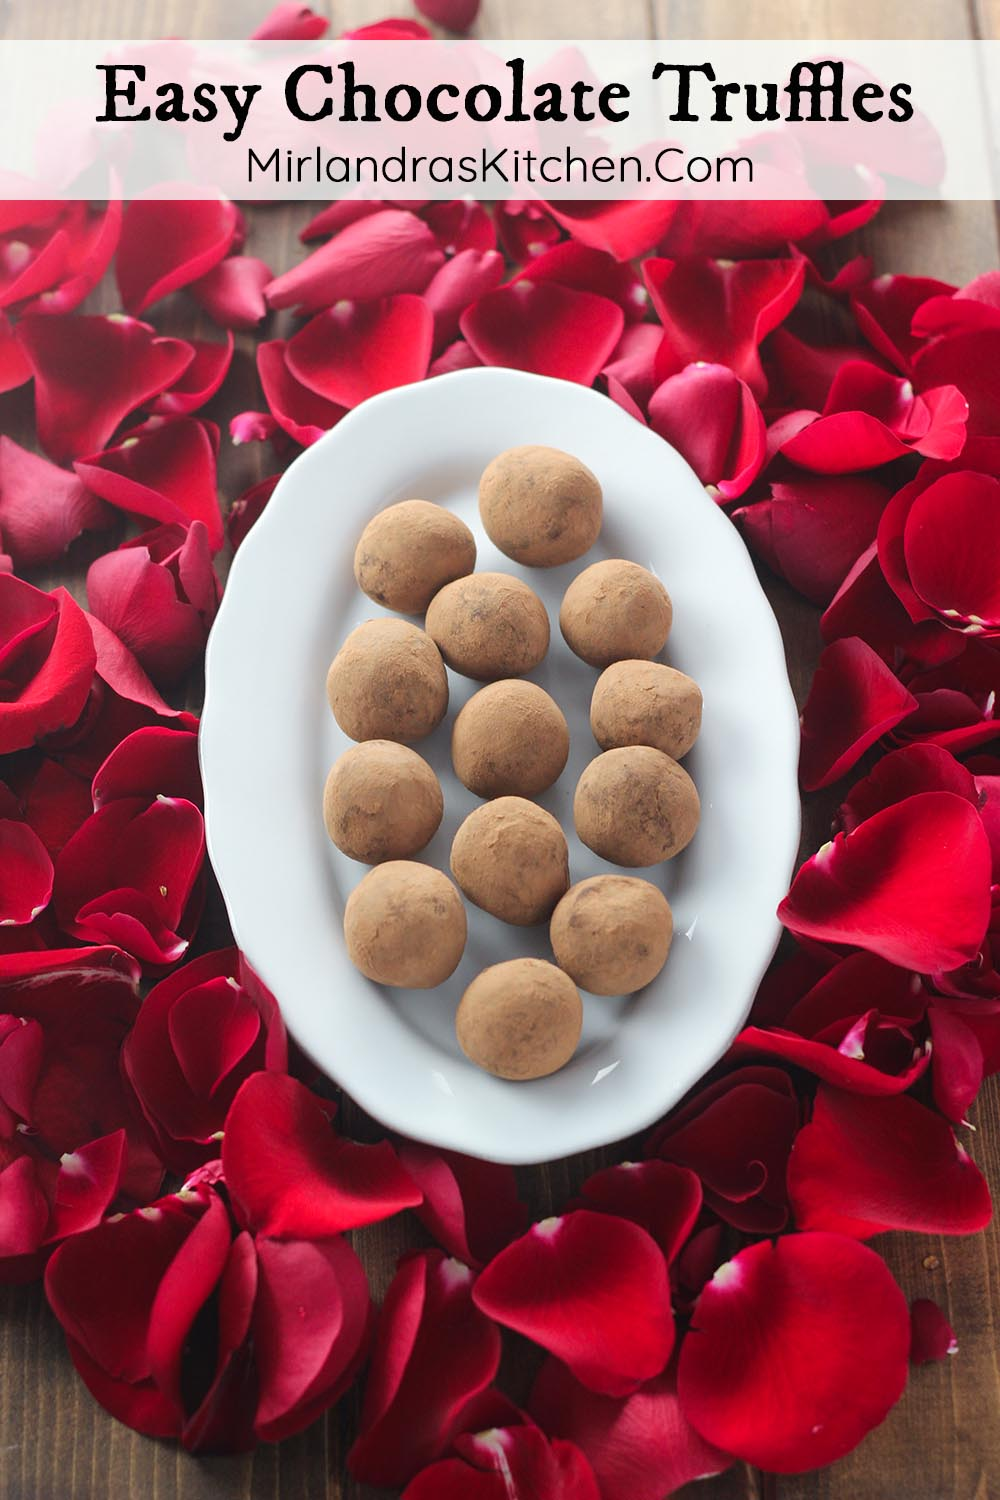 Think making special candy is hard? Think again! These Easy Chocolate Truffles are decadent and only require a few simple ingredients to make. Creamy, rich, and indulgent they will make you smile again and again. Who will you be making a batch for?